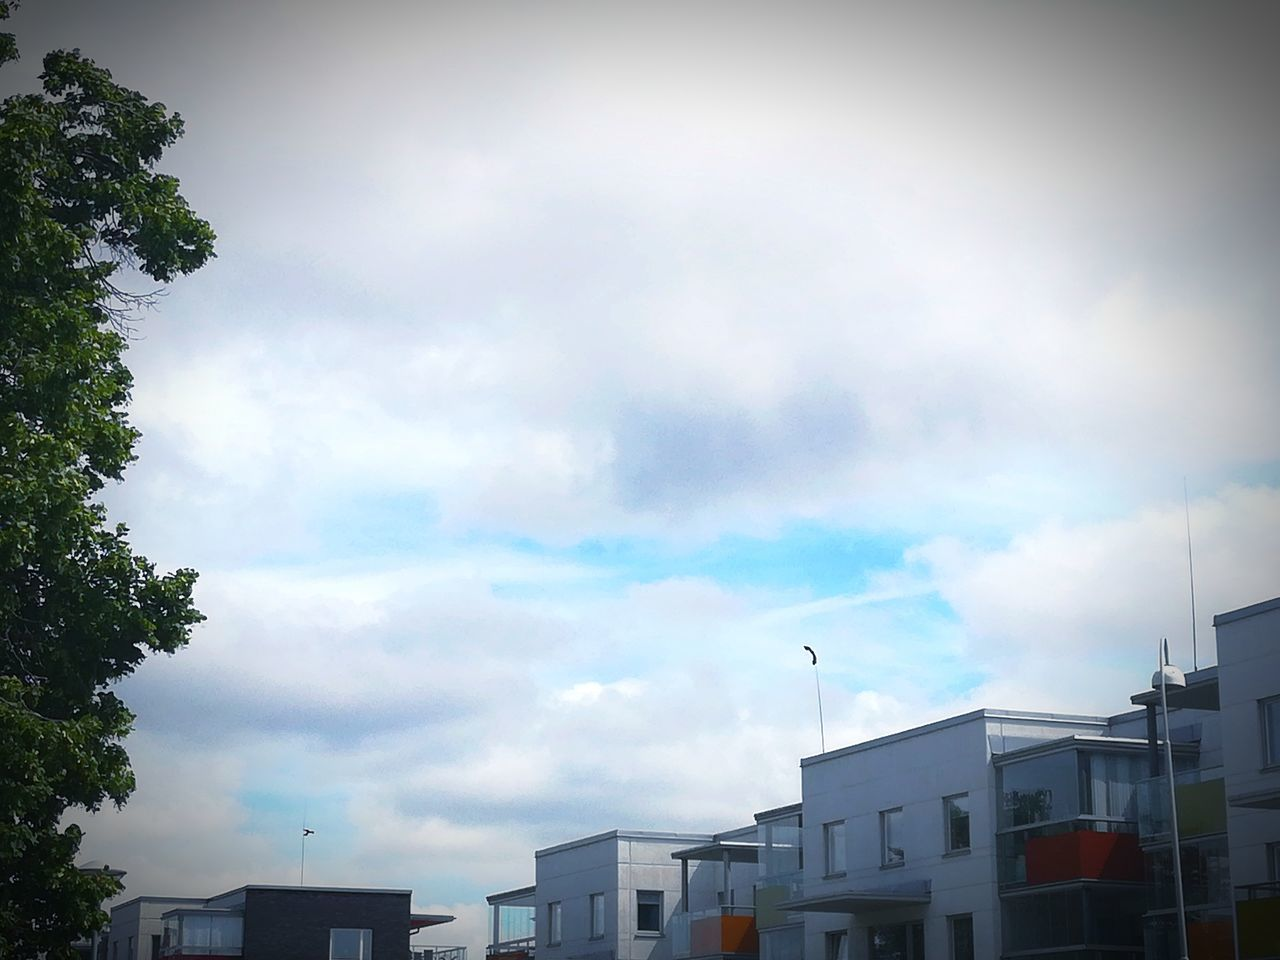 sky, architecture, cloud - sky, building exterior, built structure, no people, low angle view, day, outdoors, city, growth, tree, nature